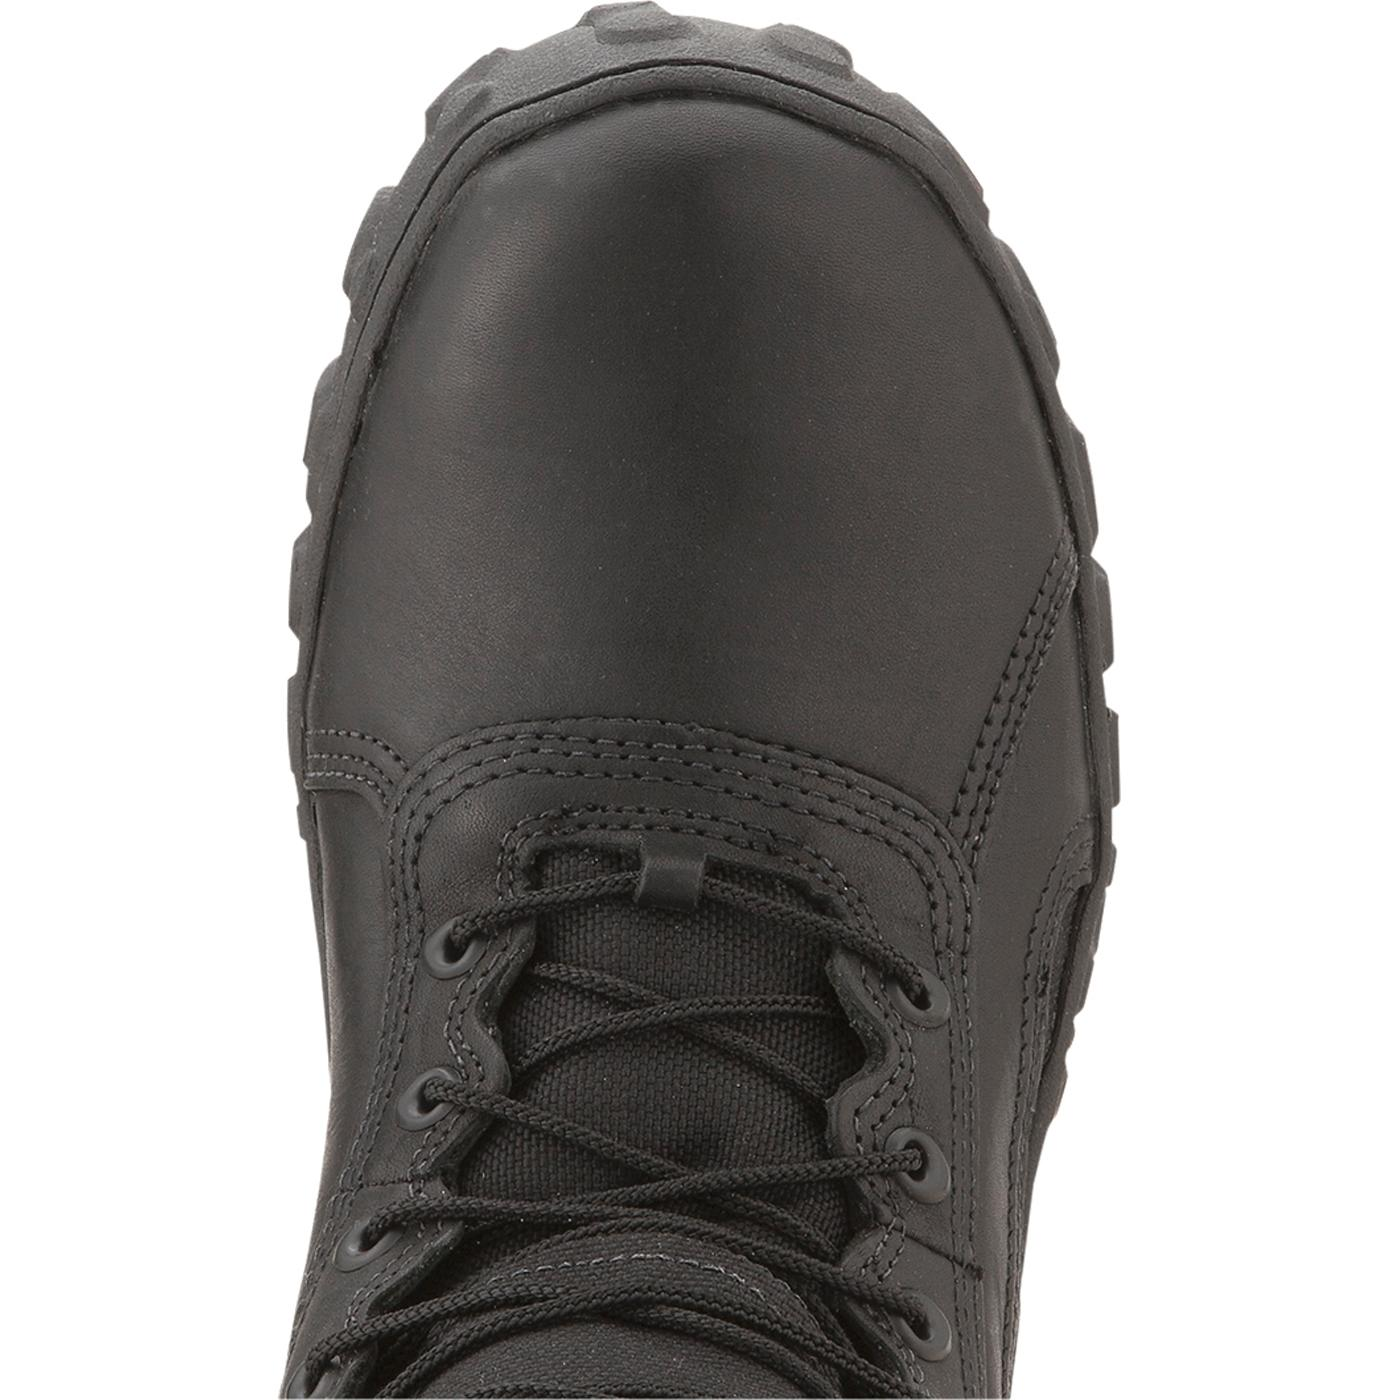 Rocky S2V GORE-TEX Waterproof Black Tactical Military Boot